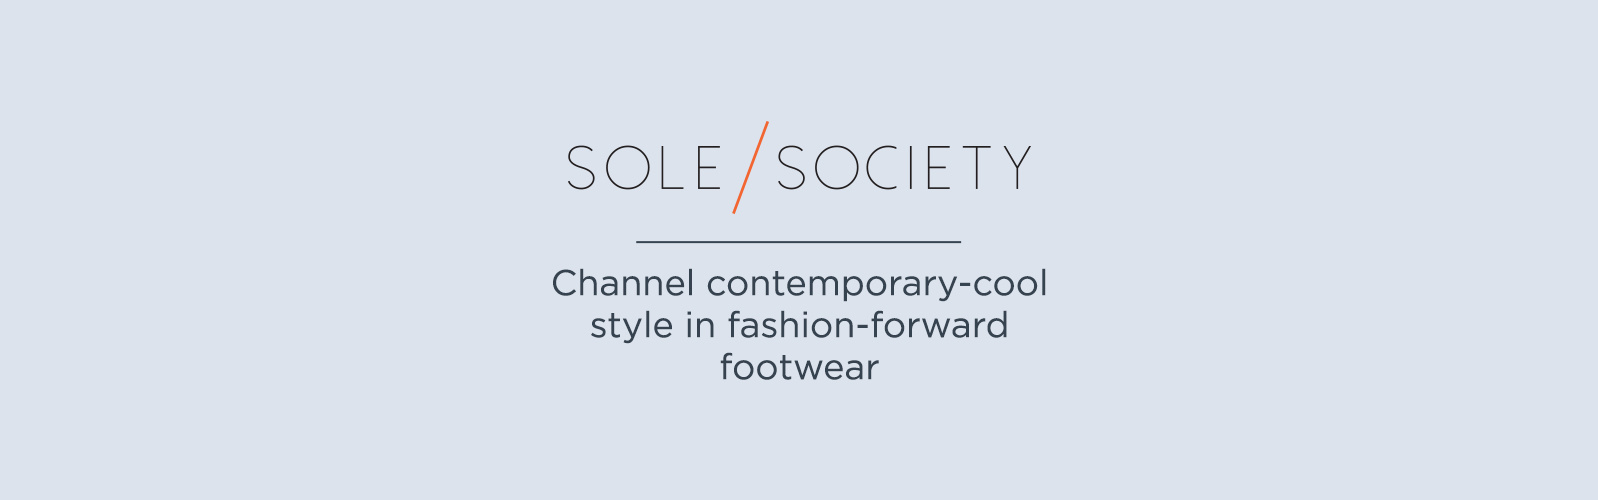 Sole Society. Channel contemporary-cool style in fashion-forward footwear